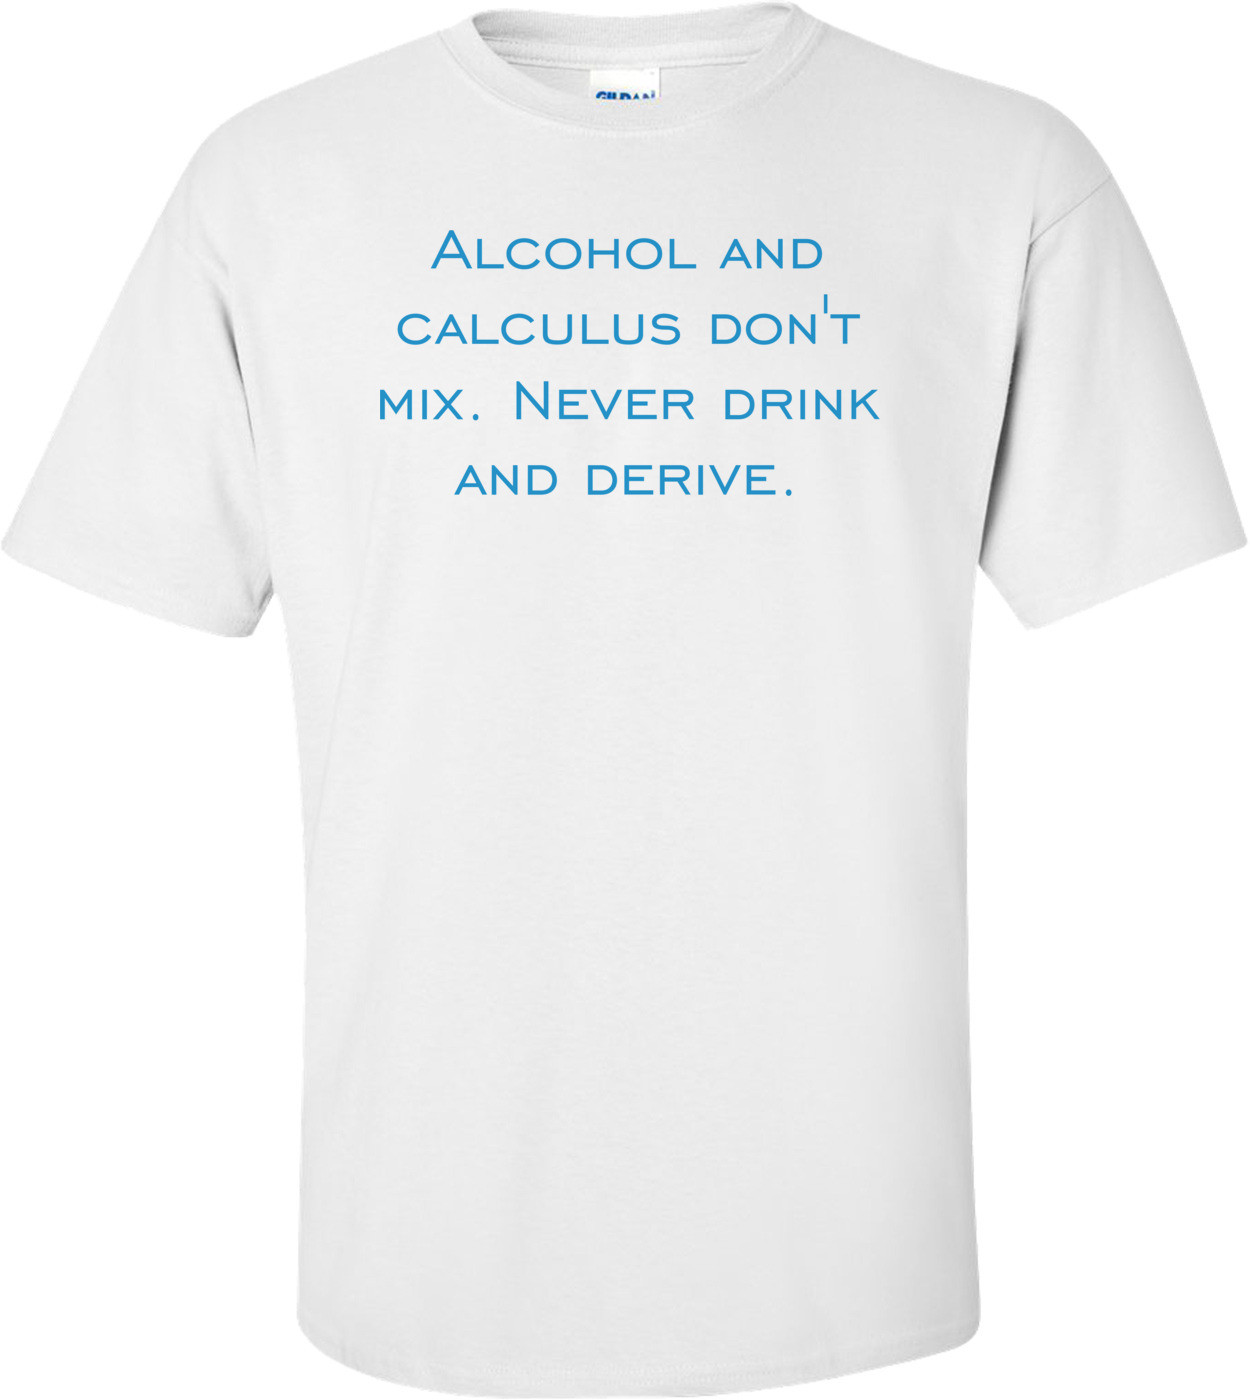 Alcohol and calculus don't mix. Never drink and derive. Shirt